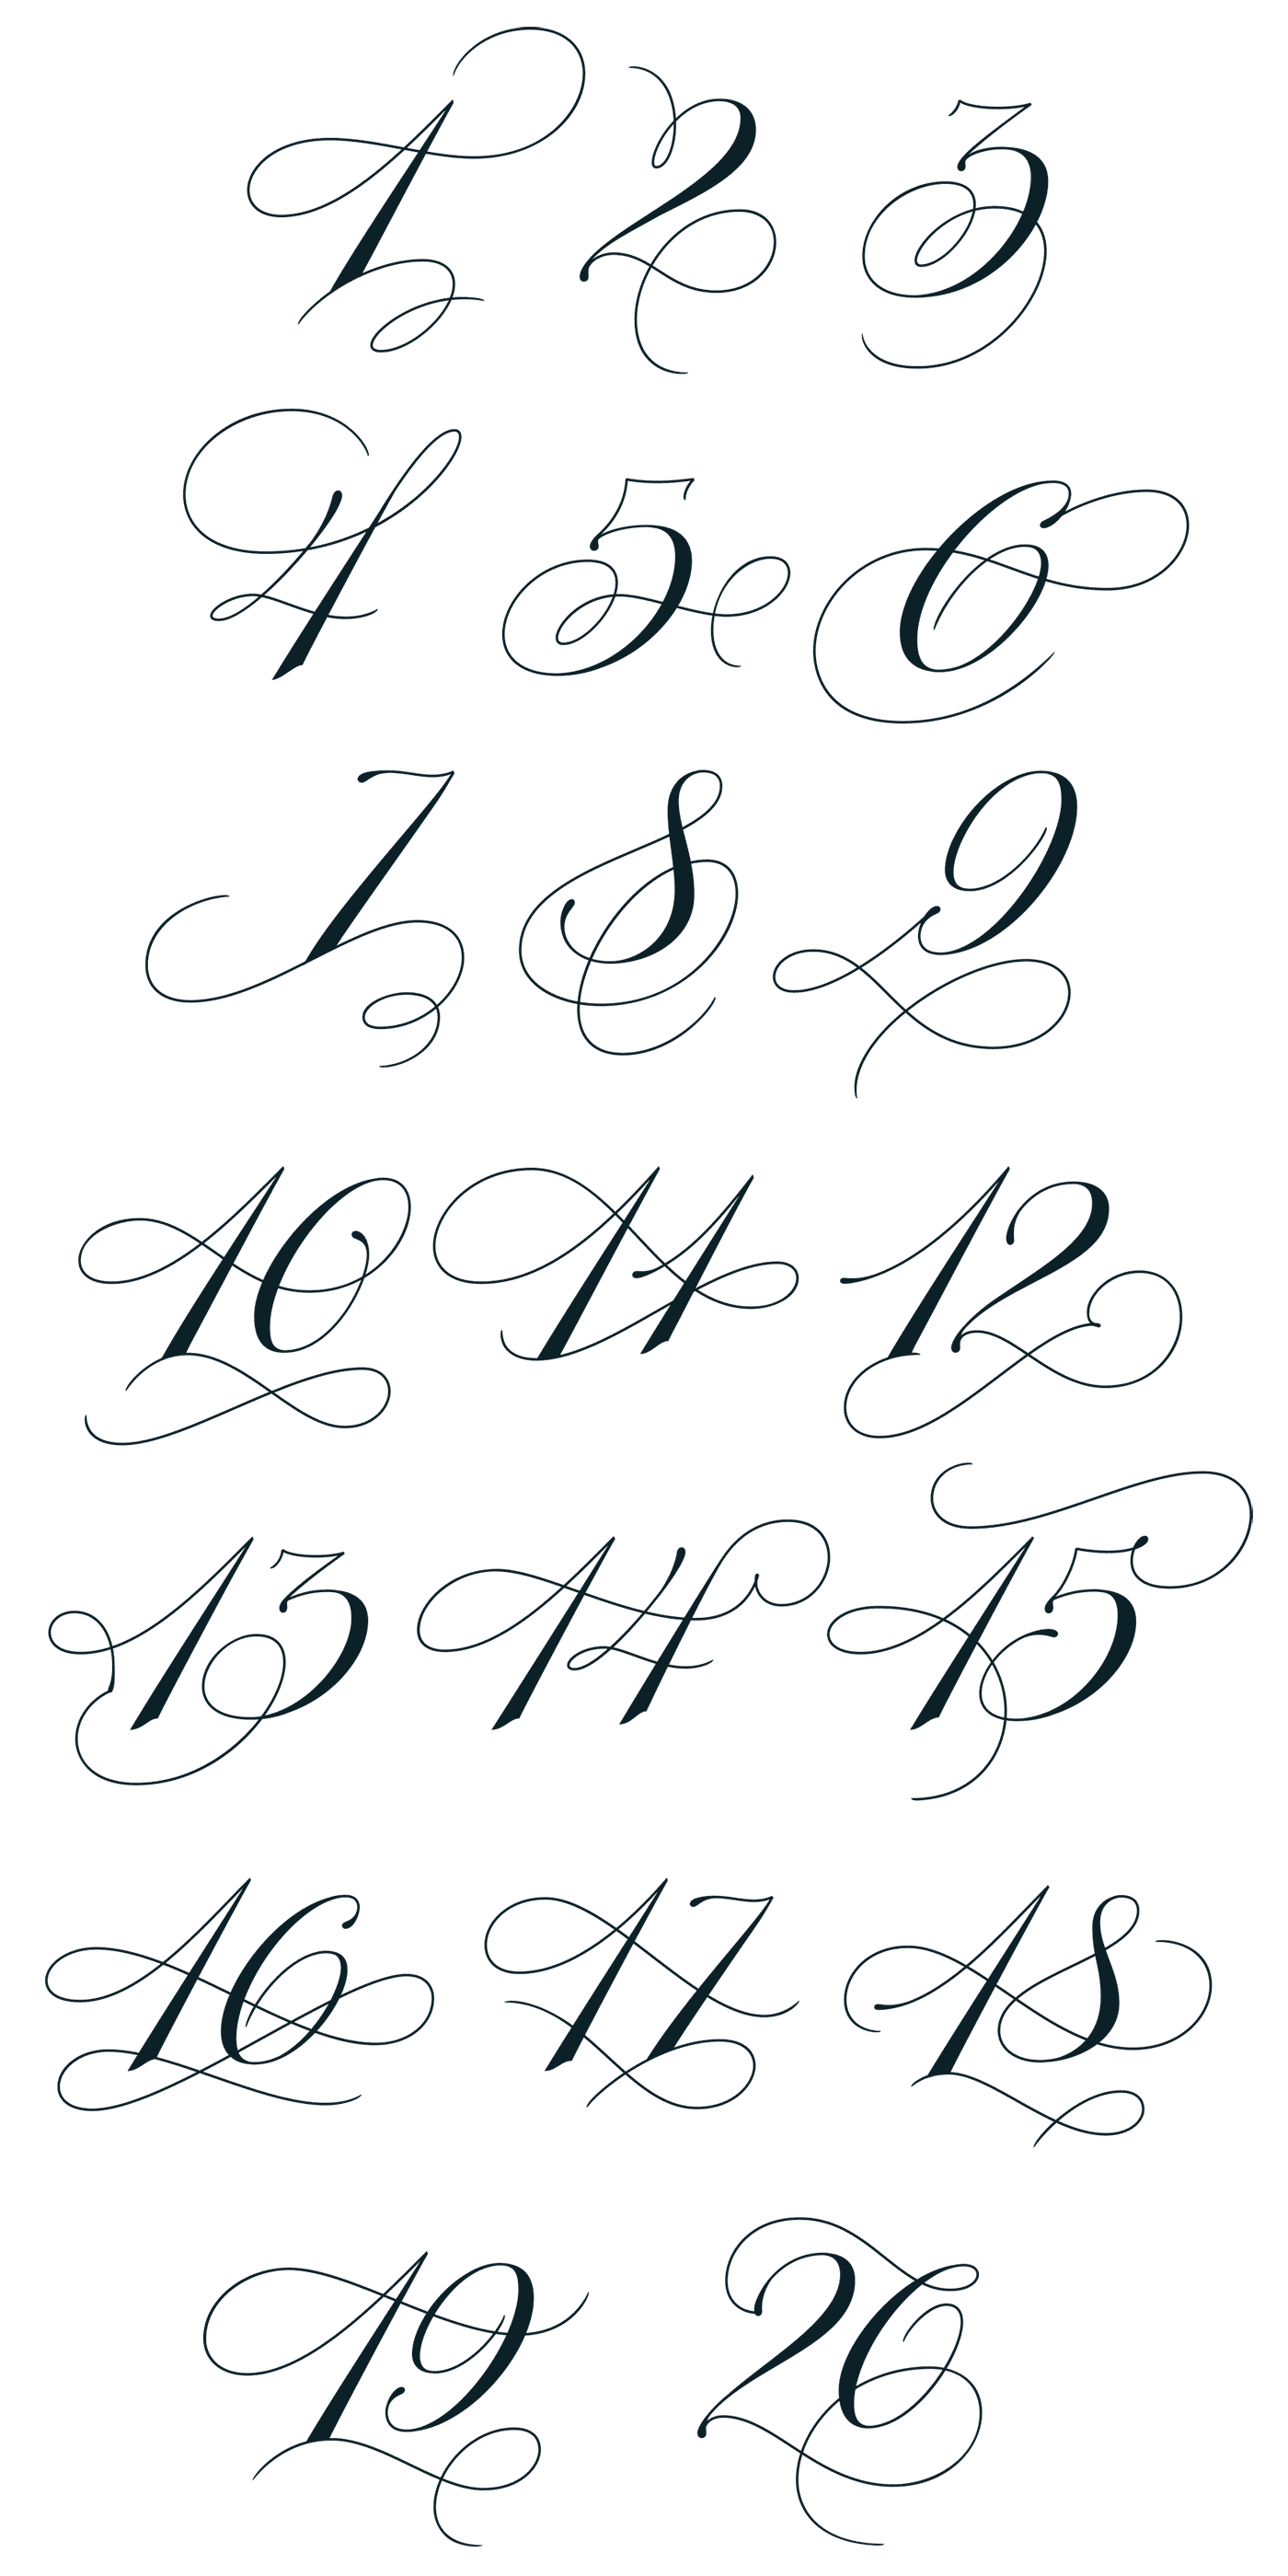 Copperplate Calligraphy Font Free 1 20 Figures By Martina Flor Pinned By Megwise It Megwise